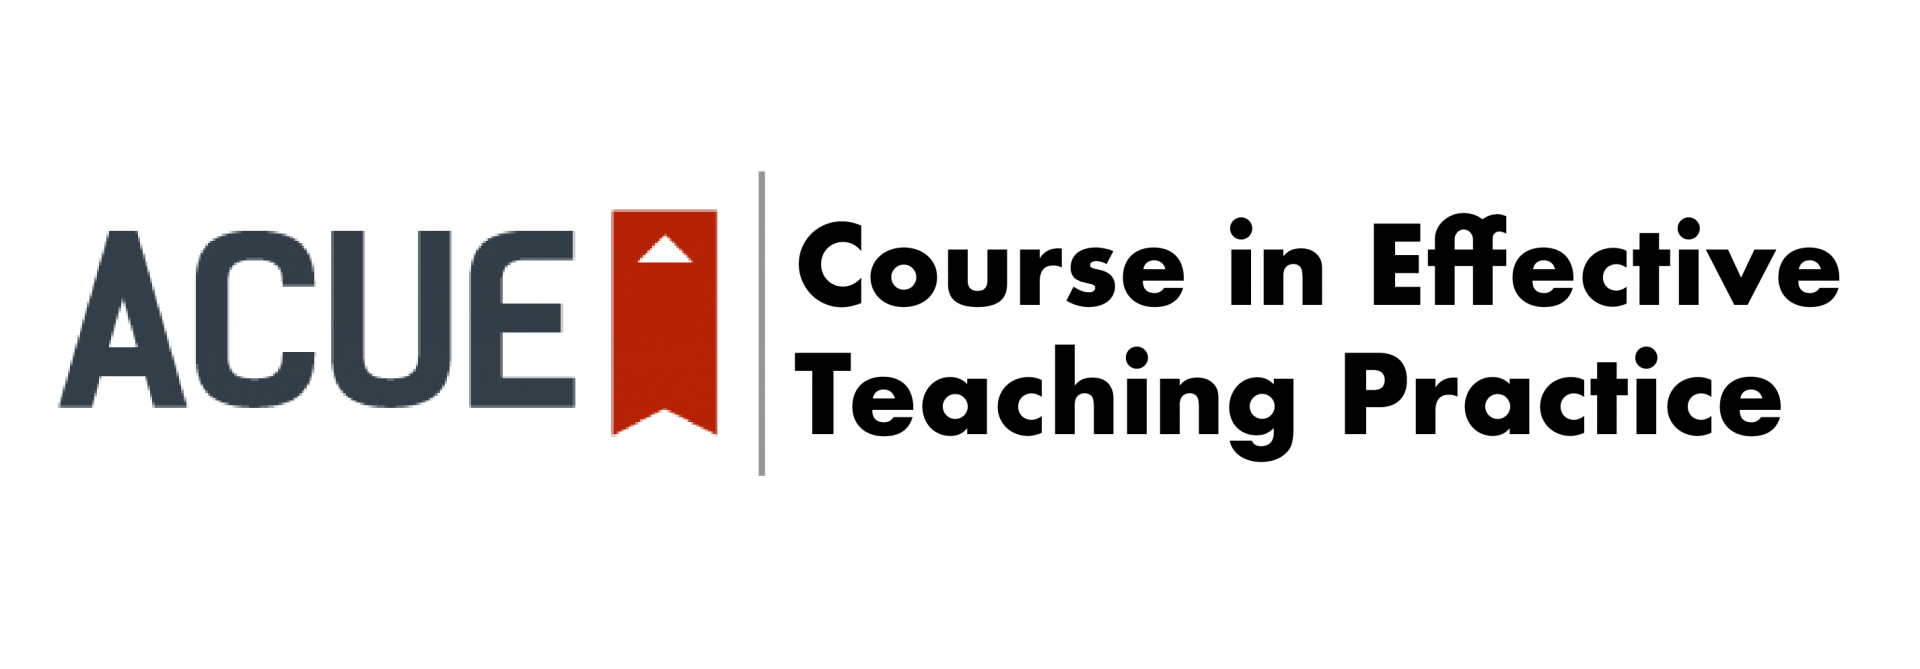 ACUE Banner - Course in Effective Teaching Practices